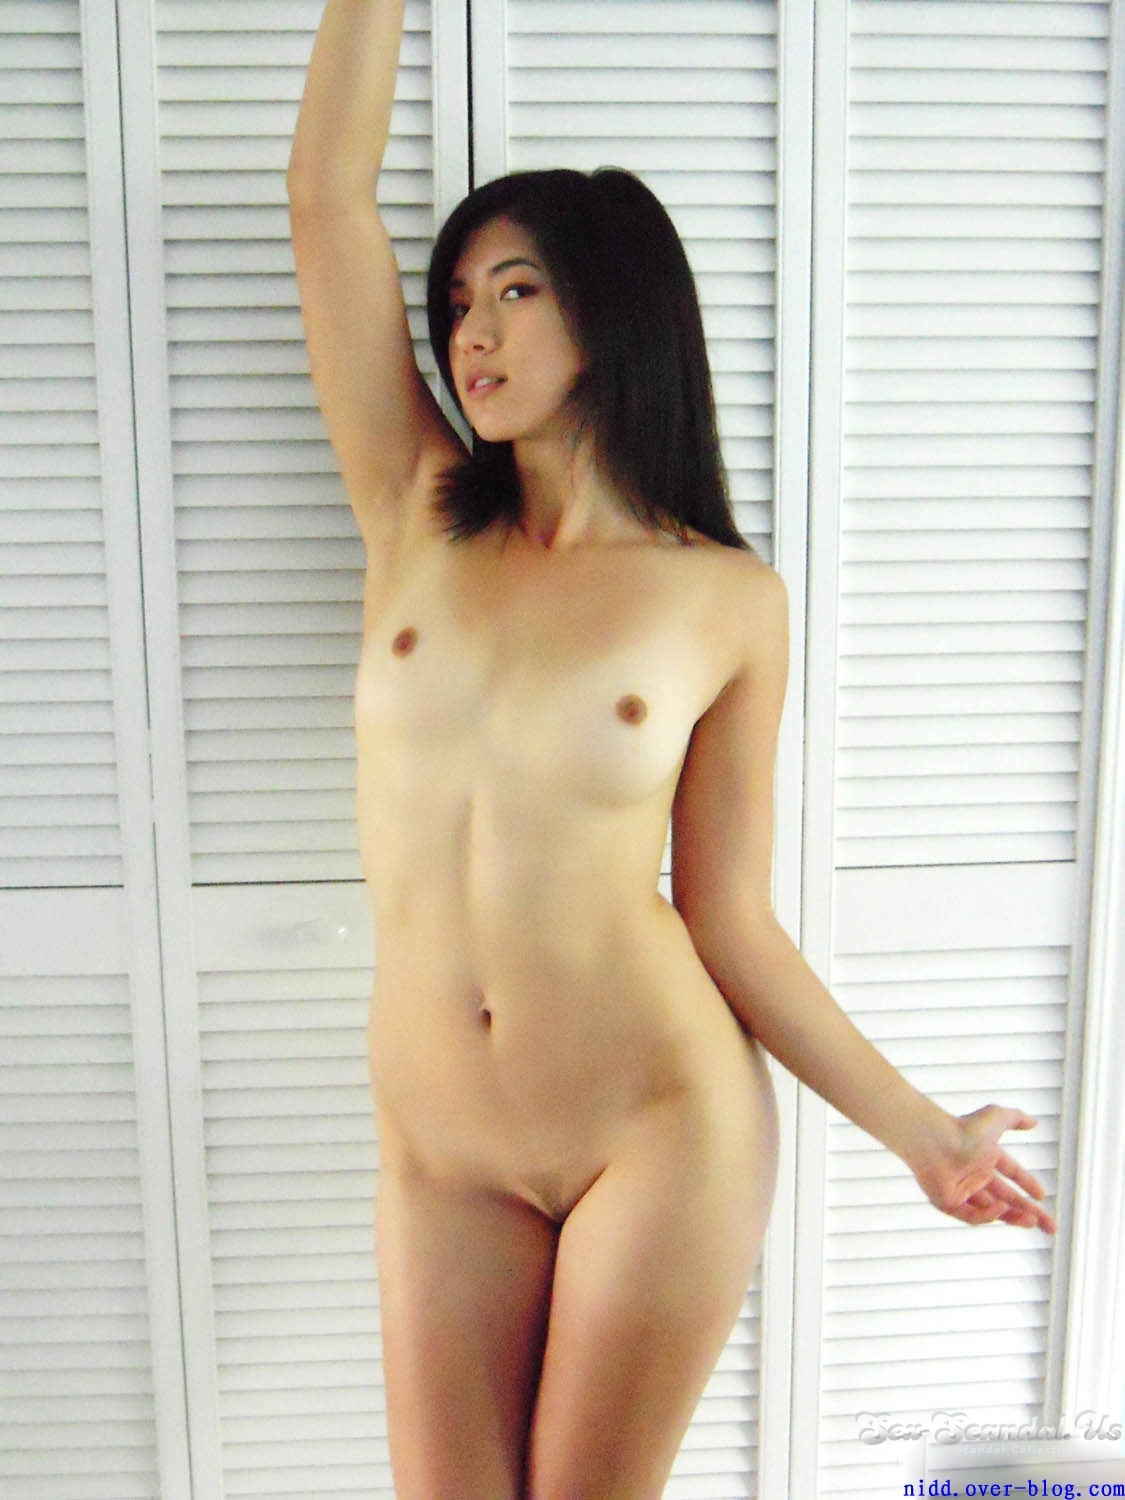 Asian American Girl having sex with BF,Sex-Scandal.Us,Taiwan Cele-brity Sex Scandal, Sex-Scandal.Us, hot sex scandal, nude girls, hot girls, Best Girl, Singapore Scandal, Korean Scandal, Japan Scandal